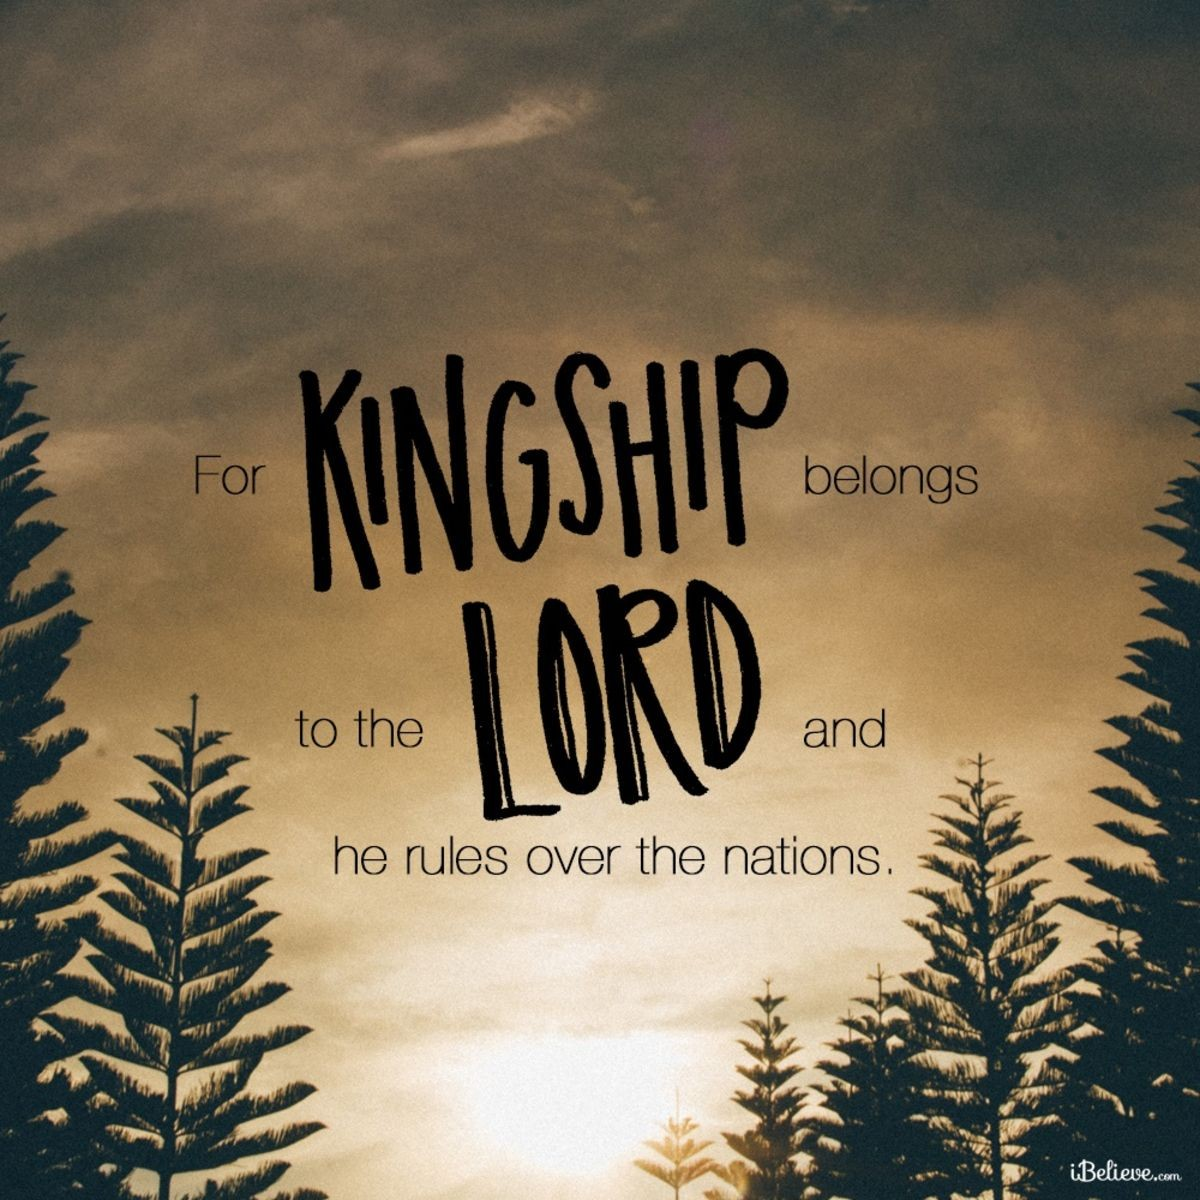 Your Daily Verse - Psalm 22:28